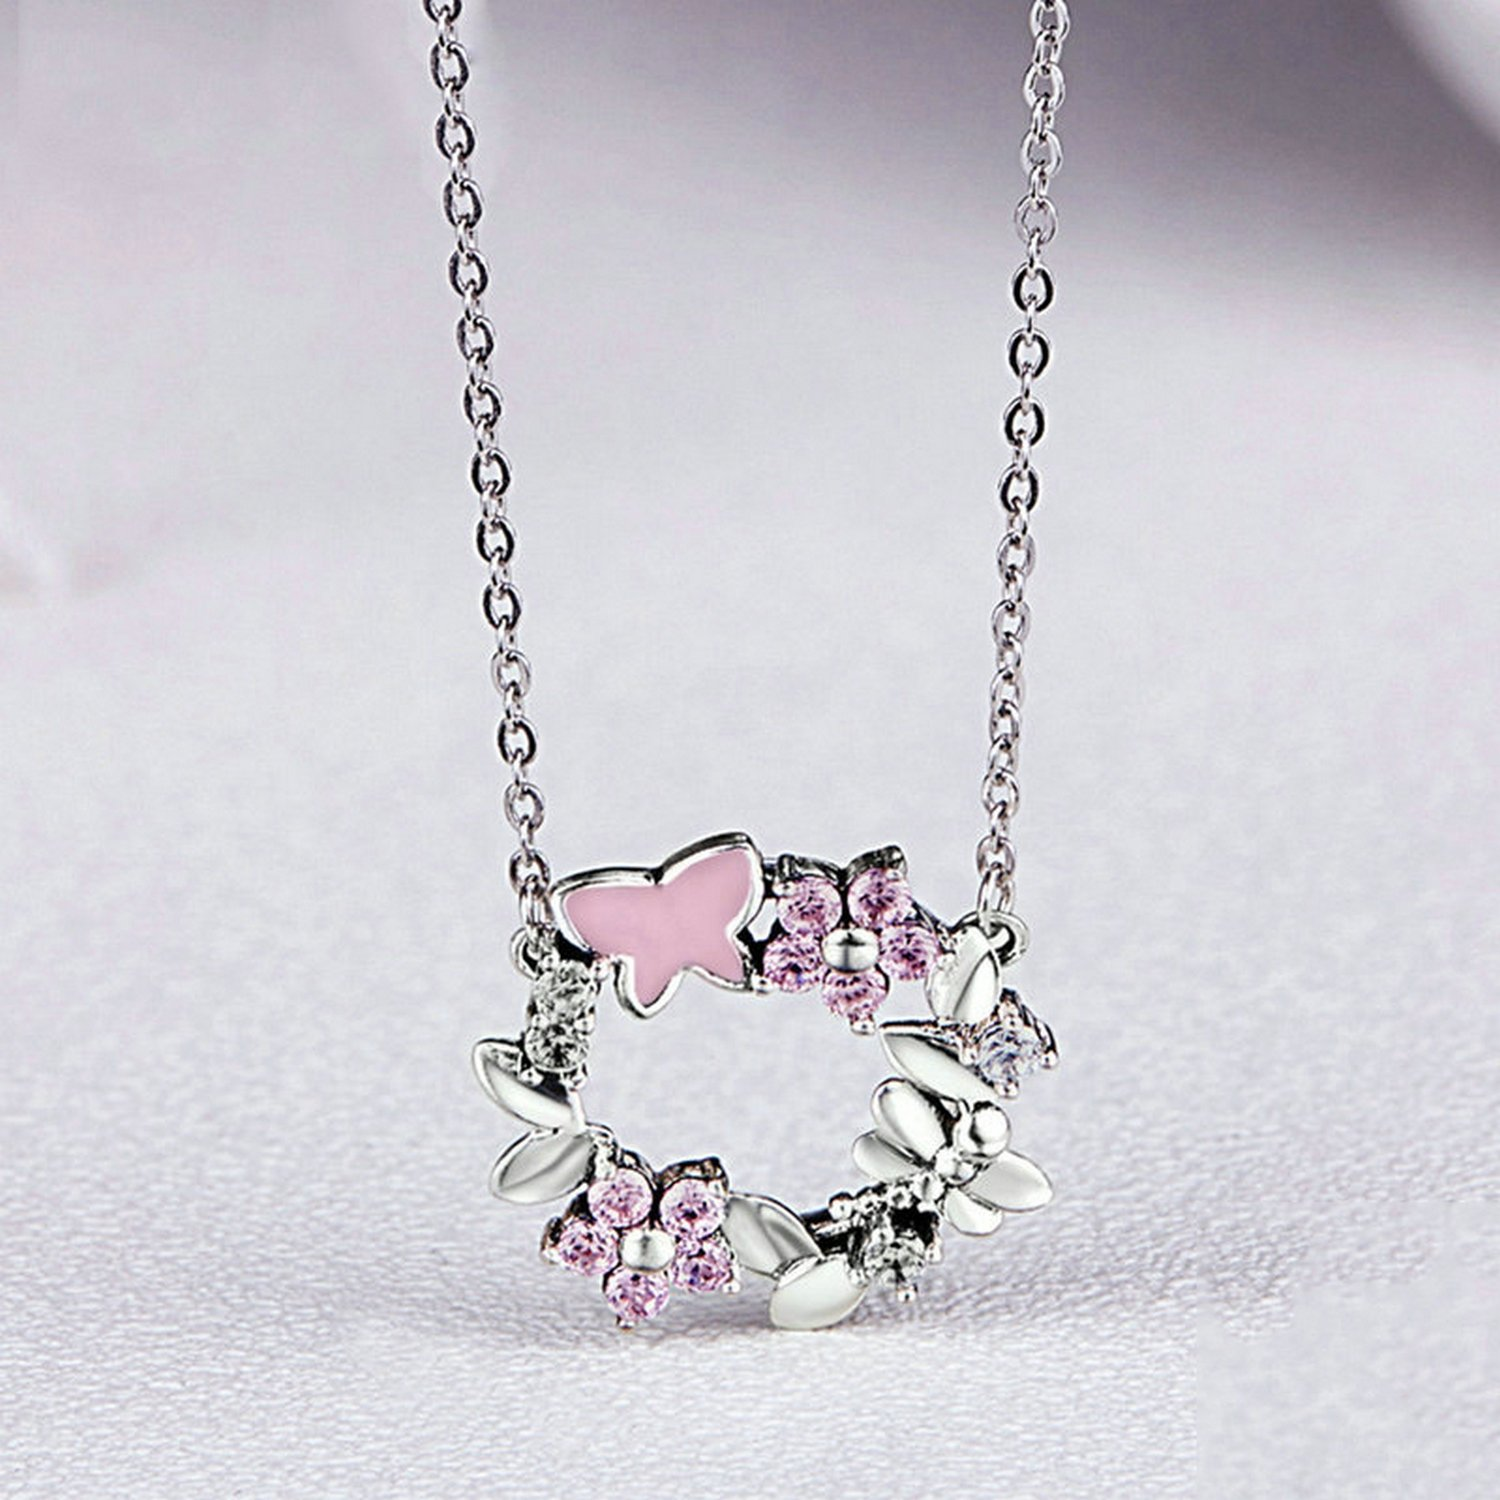 MMC Garland Butterfly Round Silver Pendants Necklaces